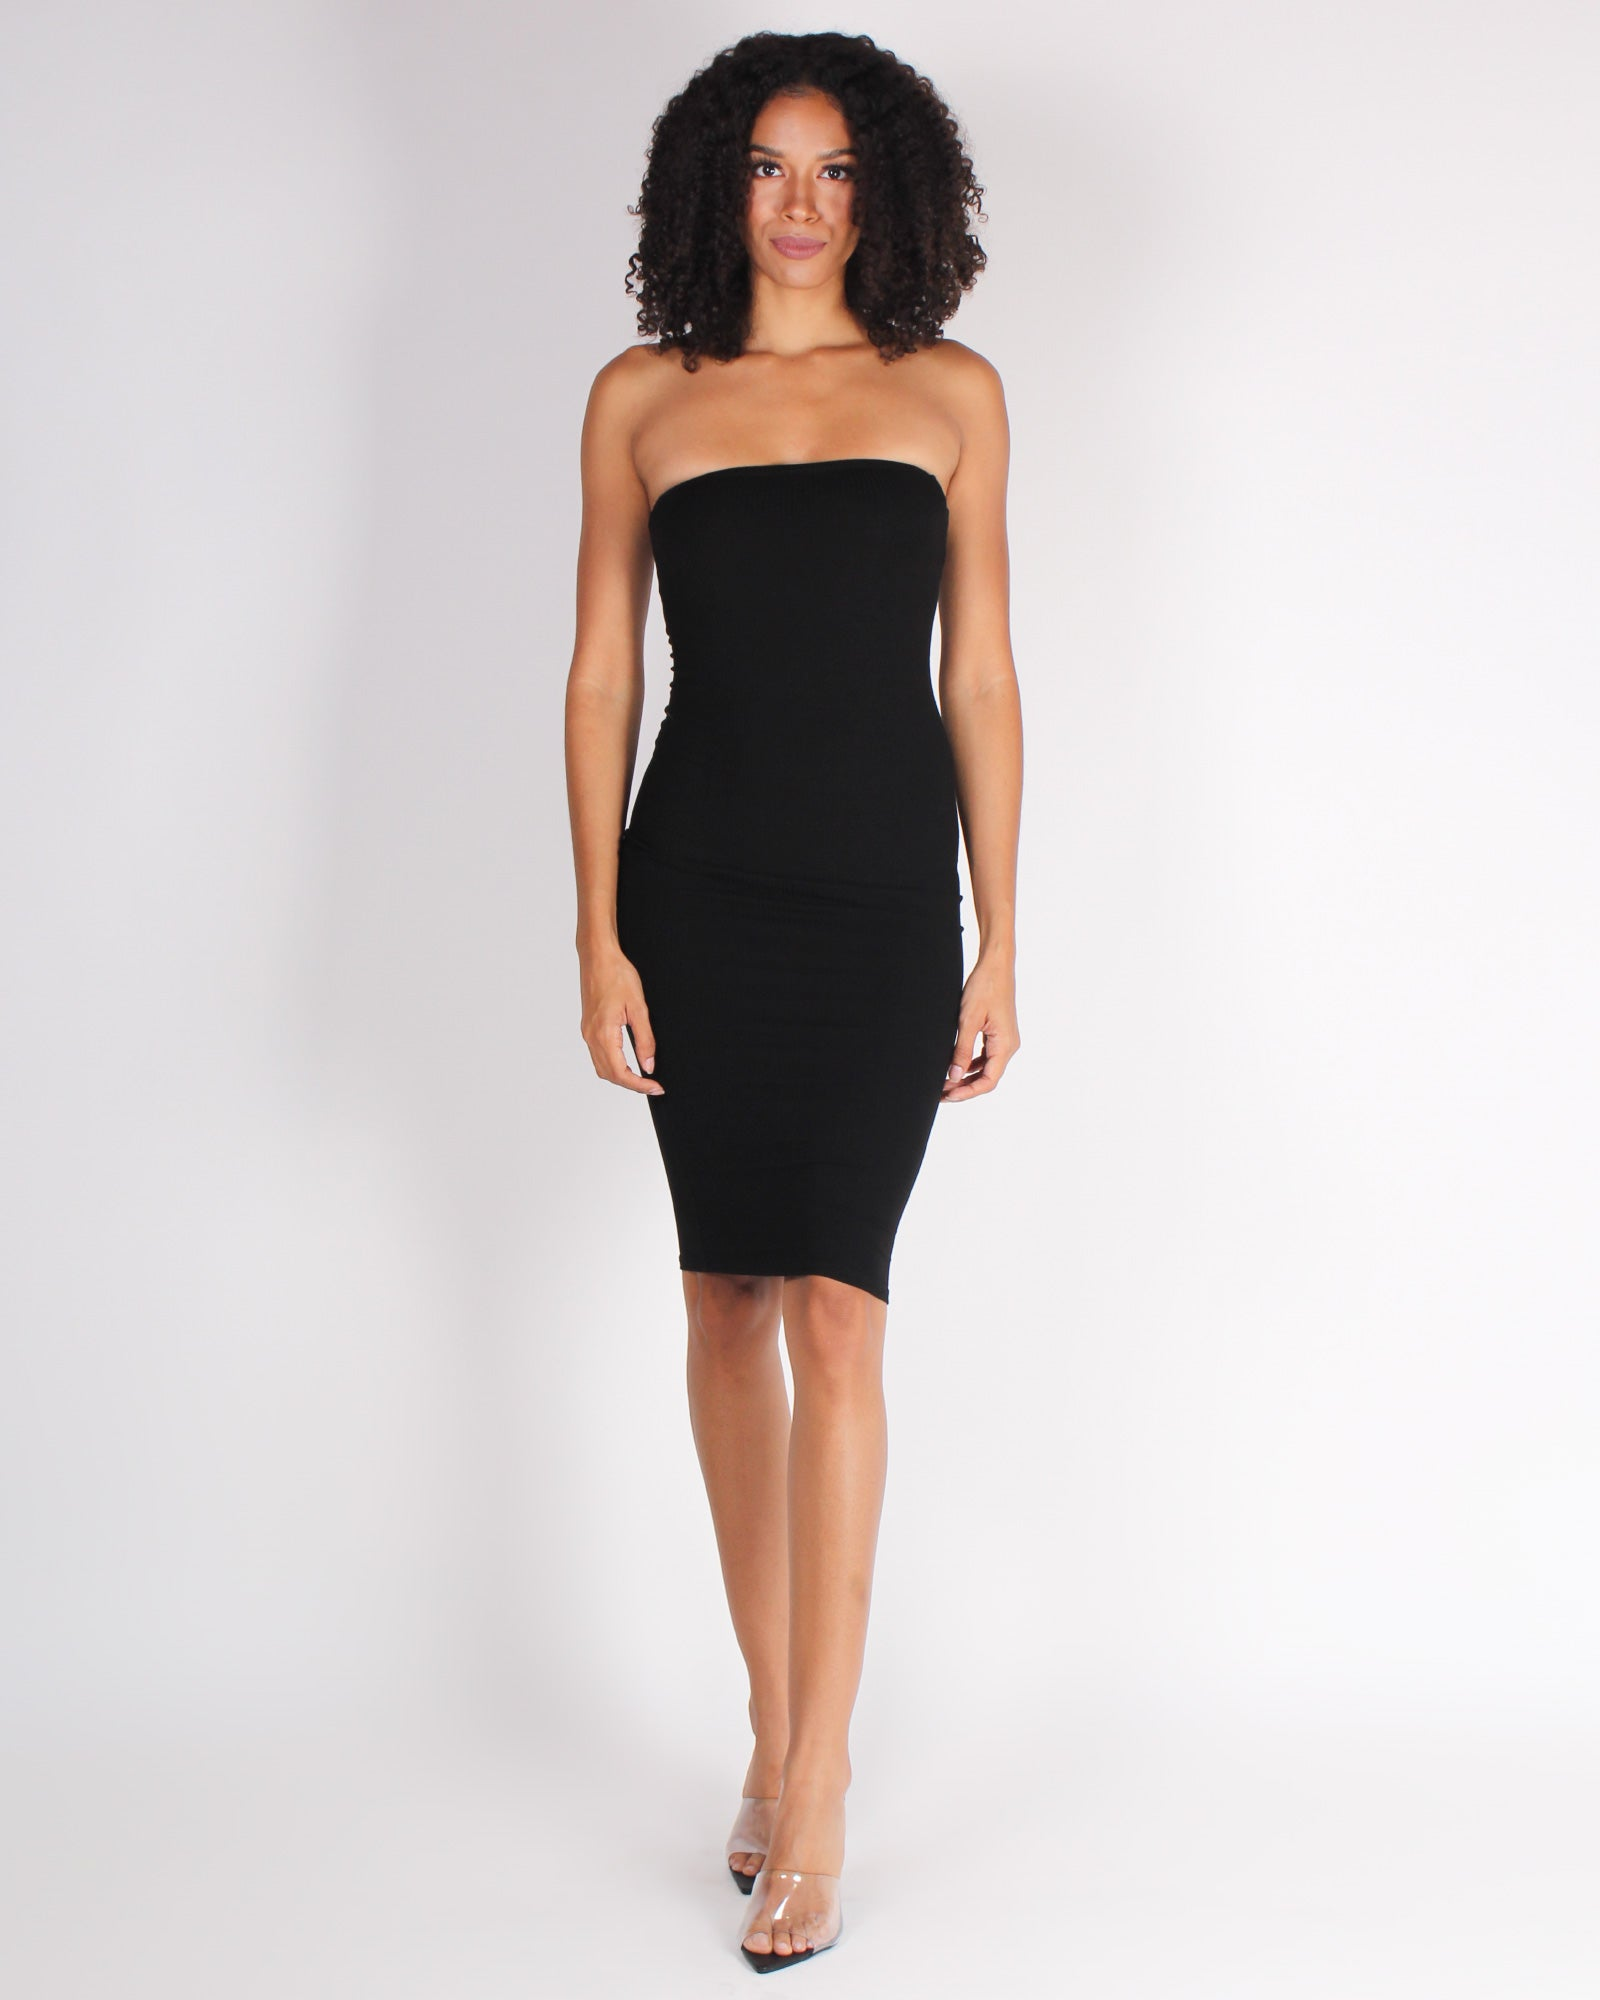 Fashion Q Shop Q Be Crazy, Wild, Free Tube Bodycon Dress (Black) RD61548